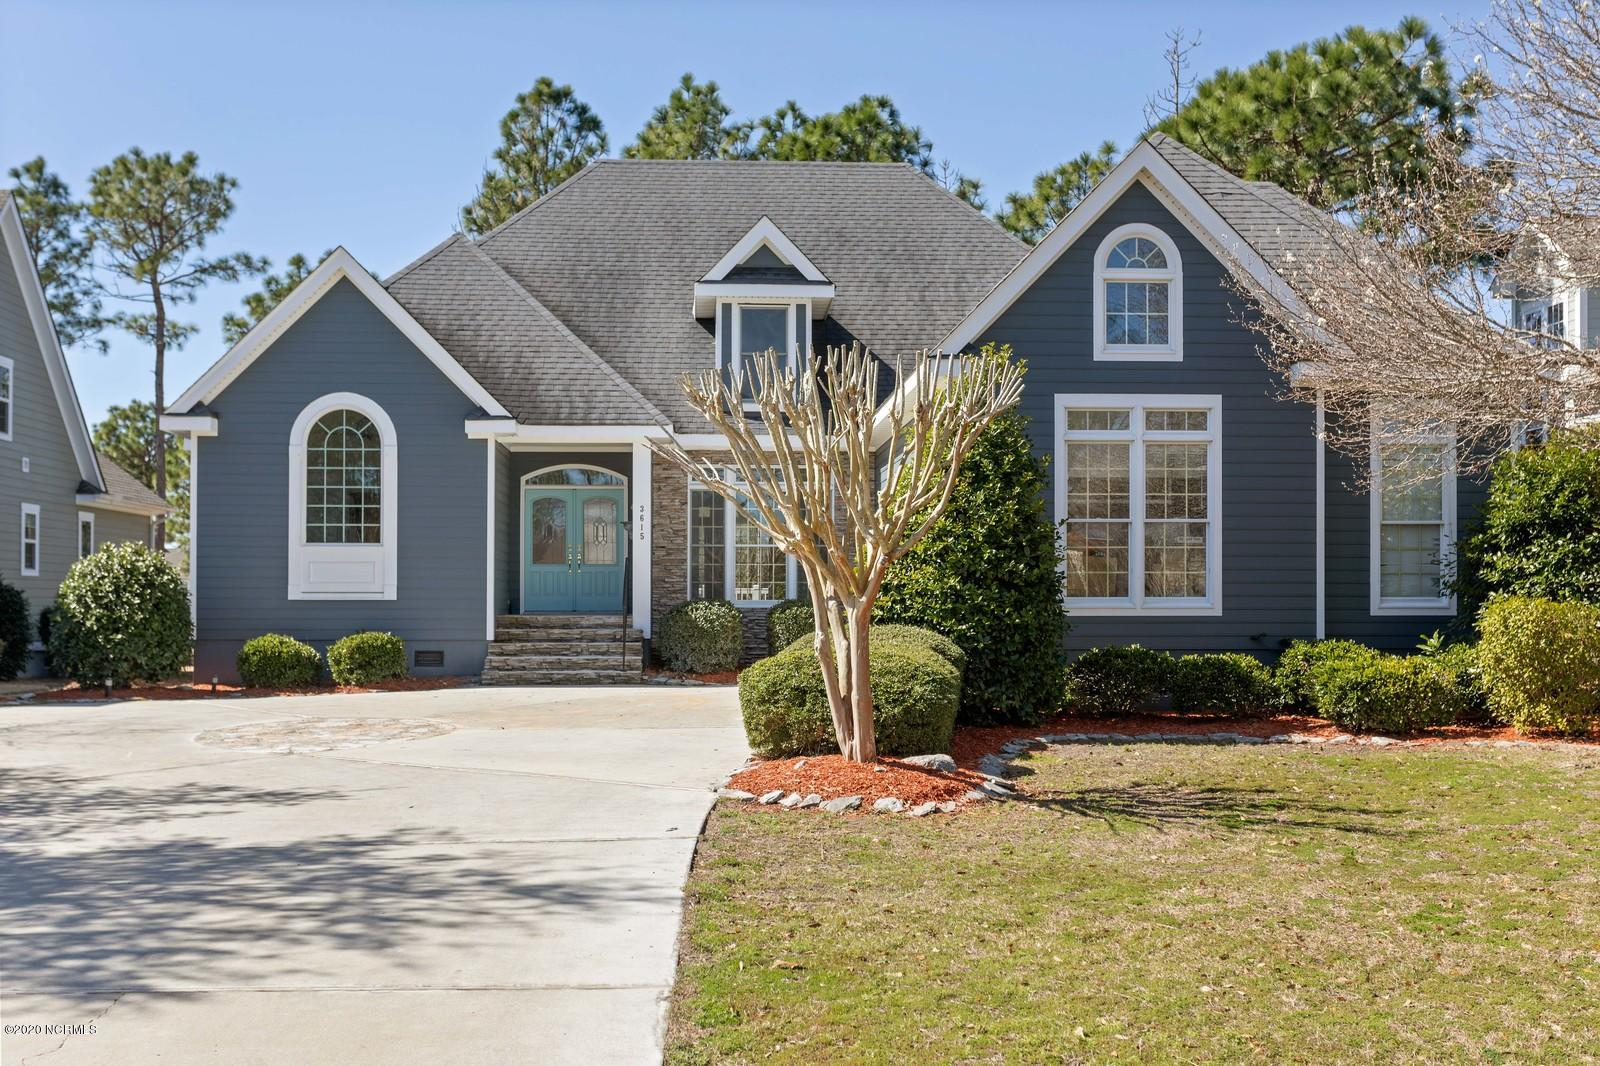 3615 W Medinah Avenue Southport, NC 28461